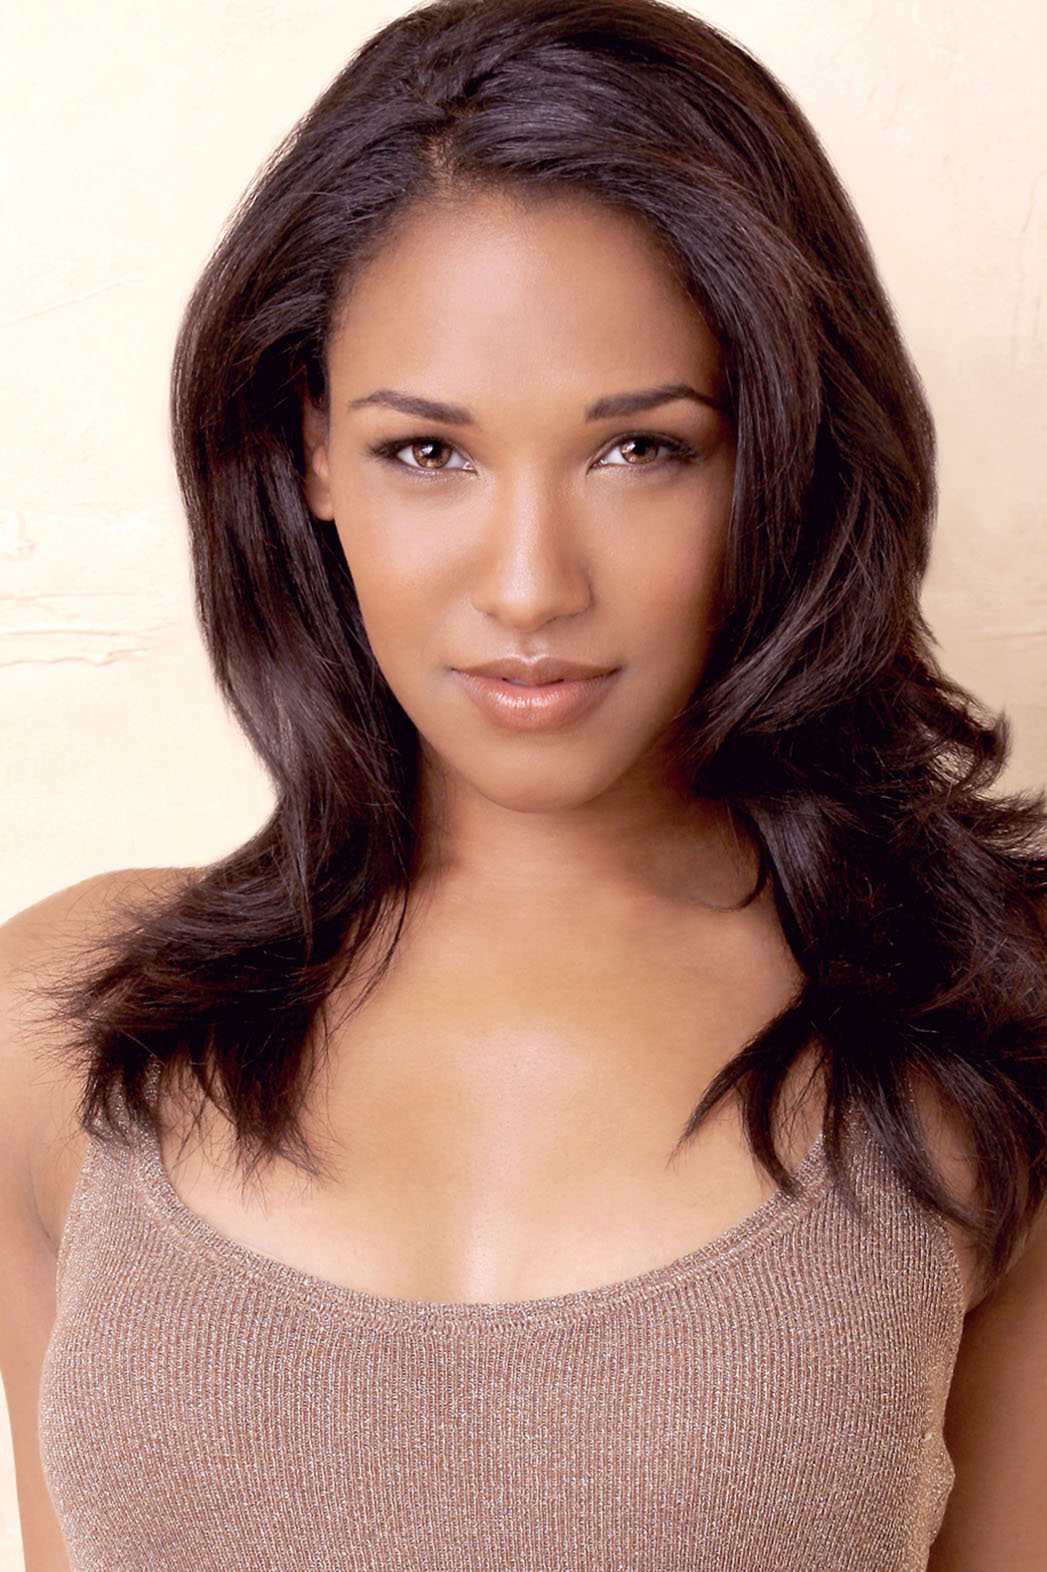 Cw S Flash Casts Female Lead Hollywood Reporter